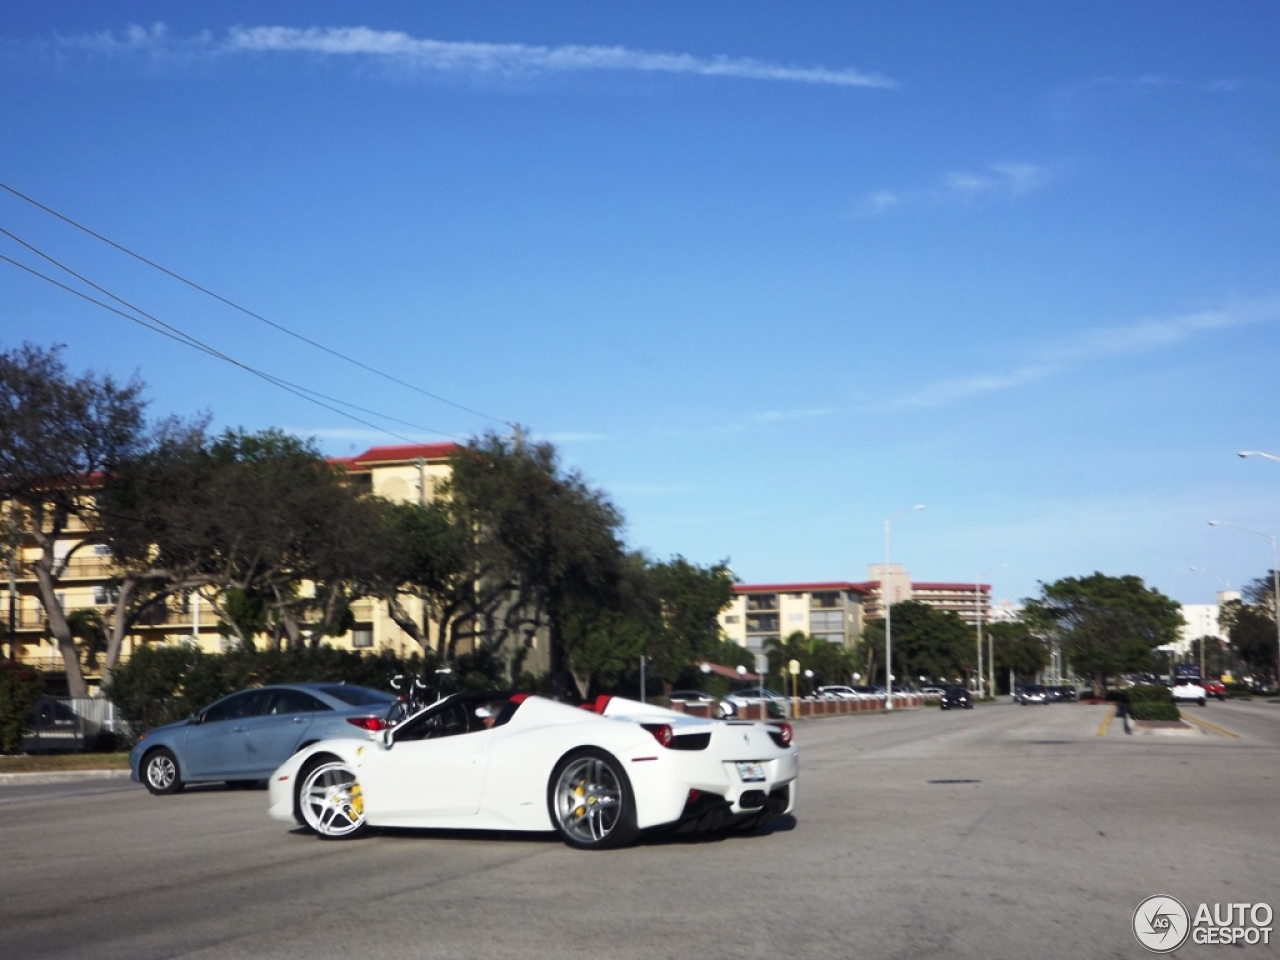 1 i ferrari 458 spider 1 - Ferrari 458 Blue And White